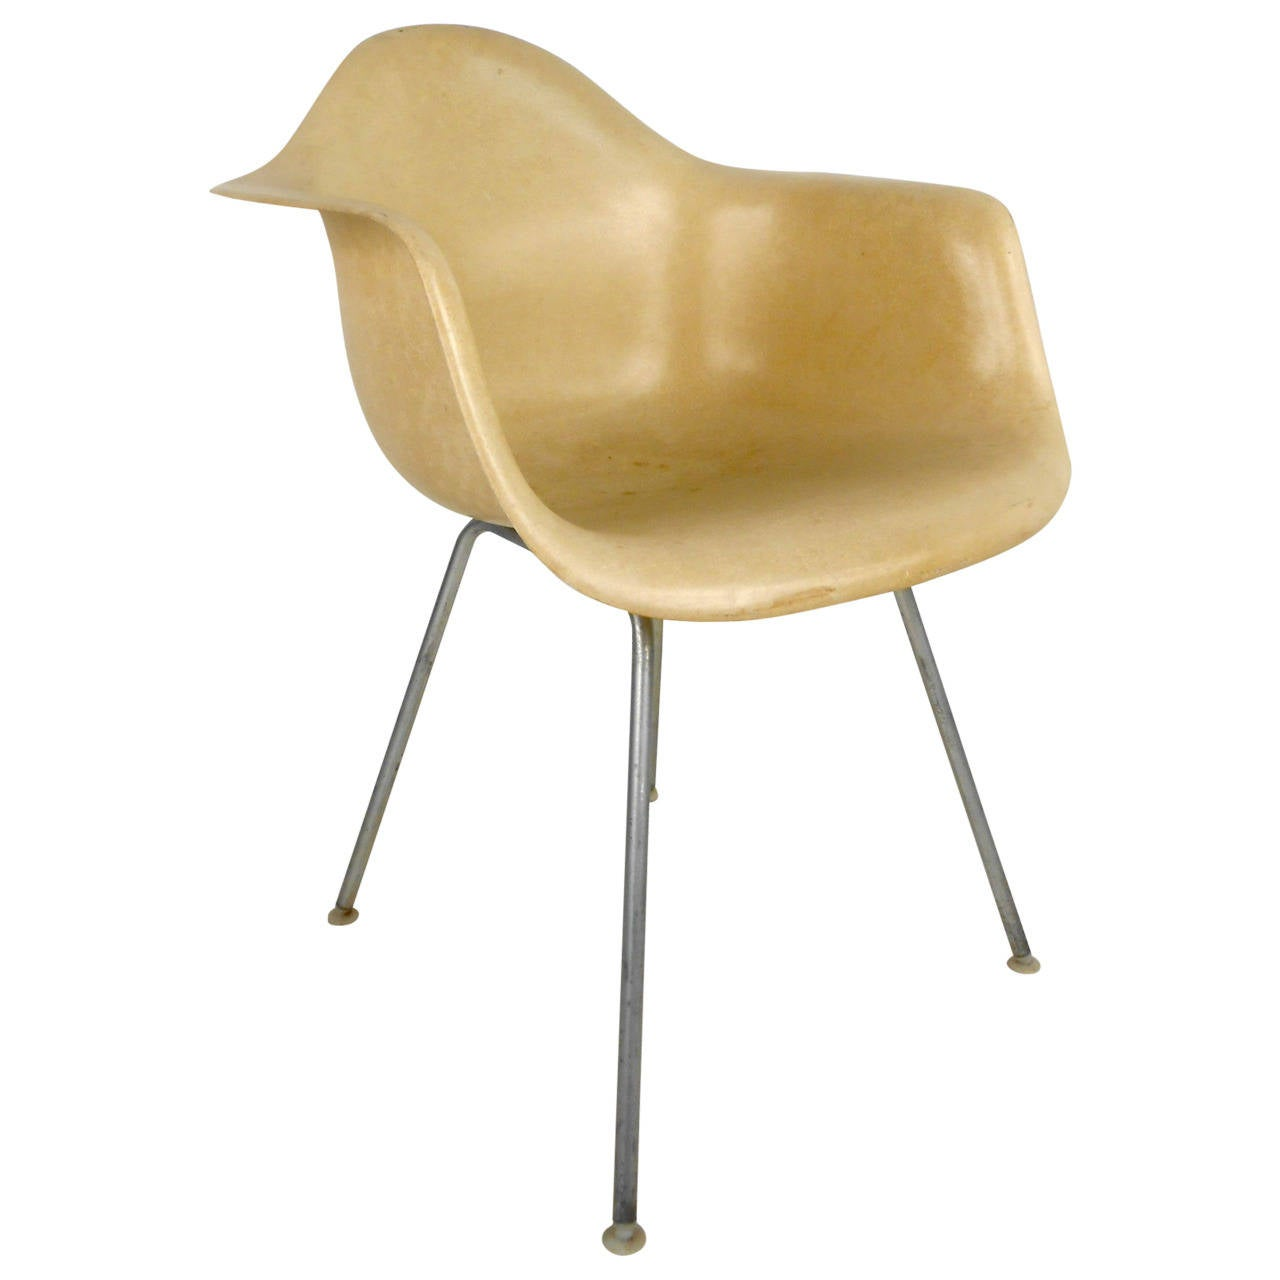 Mid century modern fiberglass shell chair by eames for herman miller for sale - Herman miller chair eames ...